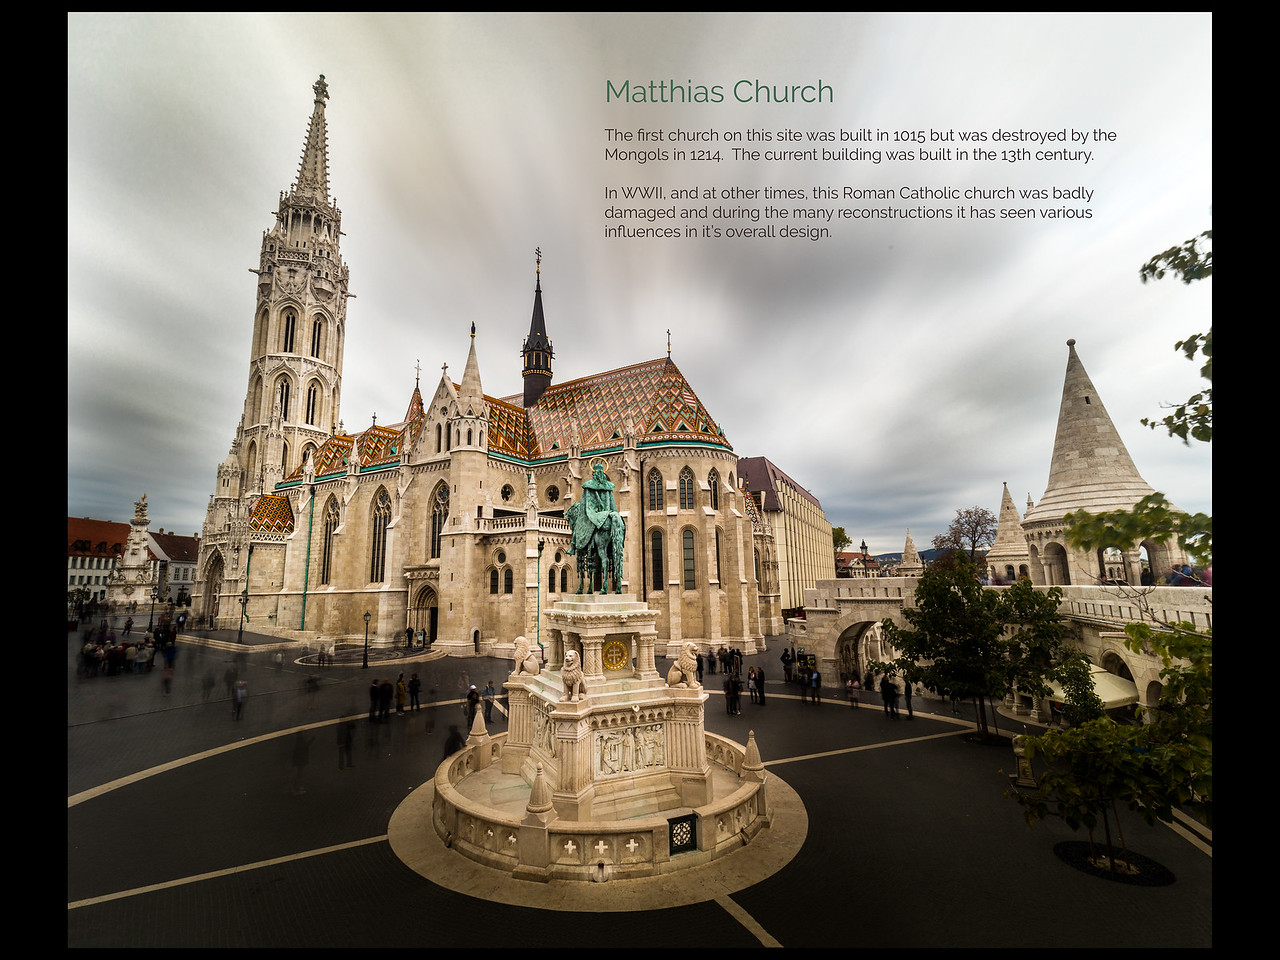 Matthias Church.  Matthias Church is a Roman Catholic church located in Budapest, Hungary, in front of the Fisherman's Bastion at the heart of Buda's Castle District.  The official name is the Church of Our Lady